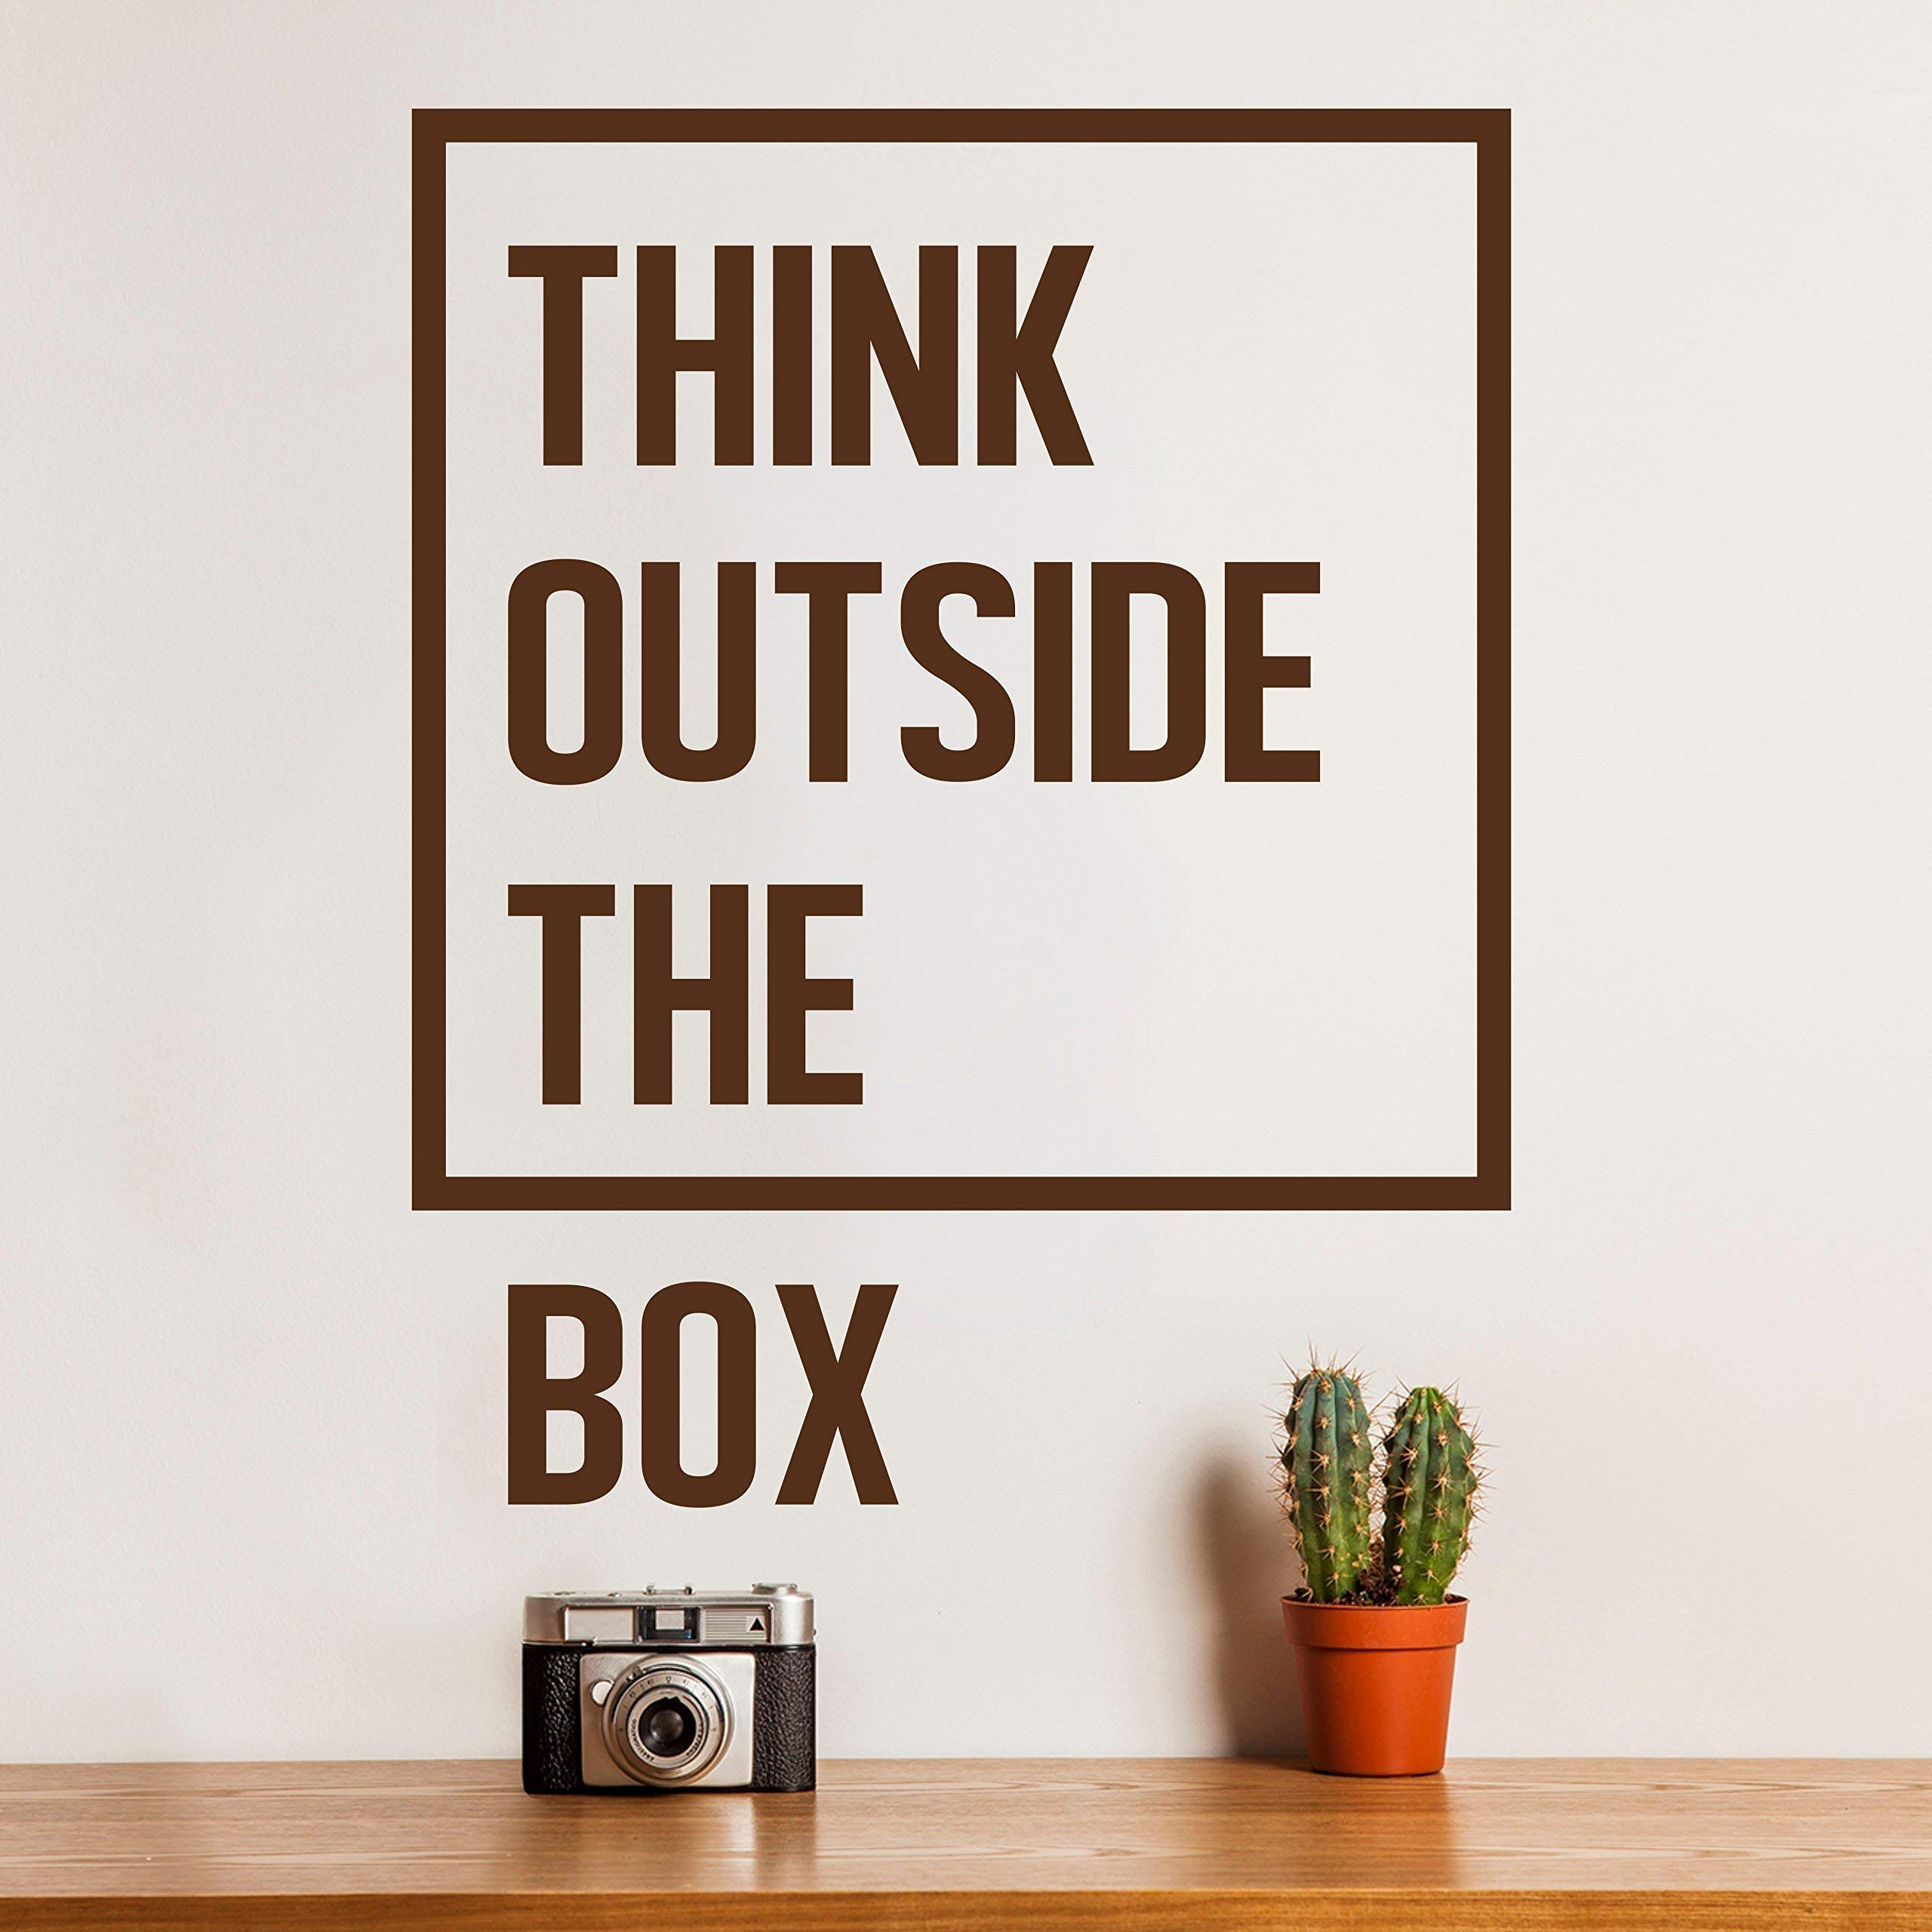 Wallency Think Outside the Box Motivational Wall Decal - High Quality Removable Vinyl Sticker by Wallency